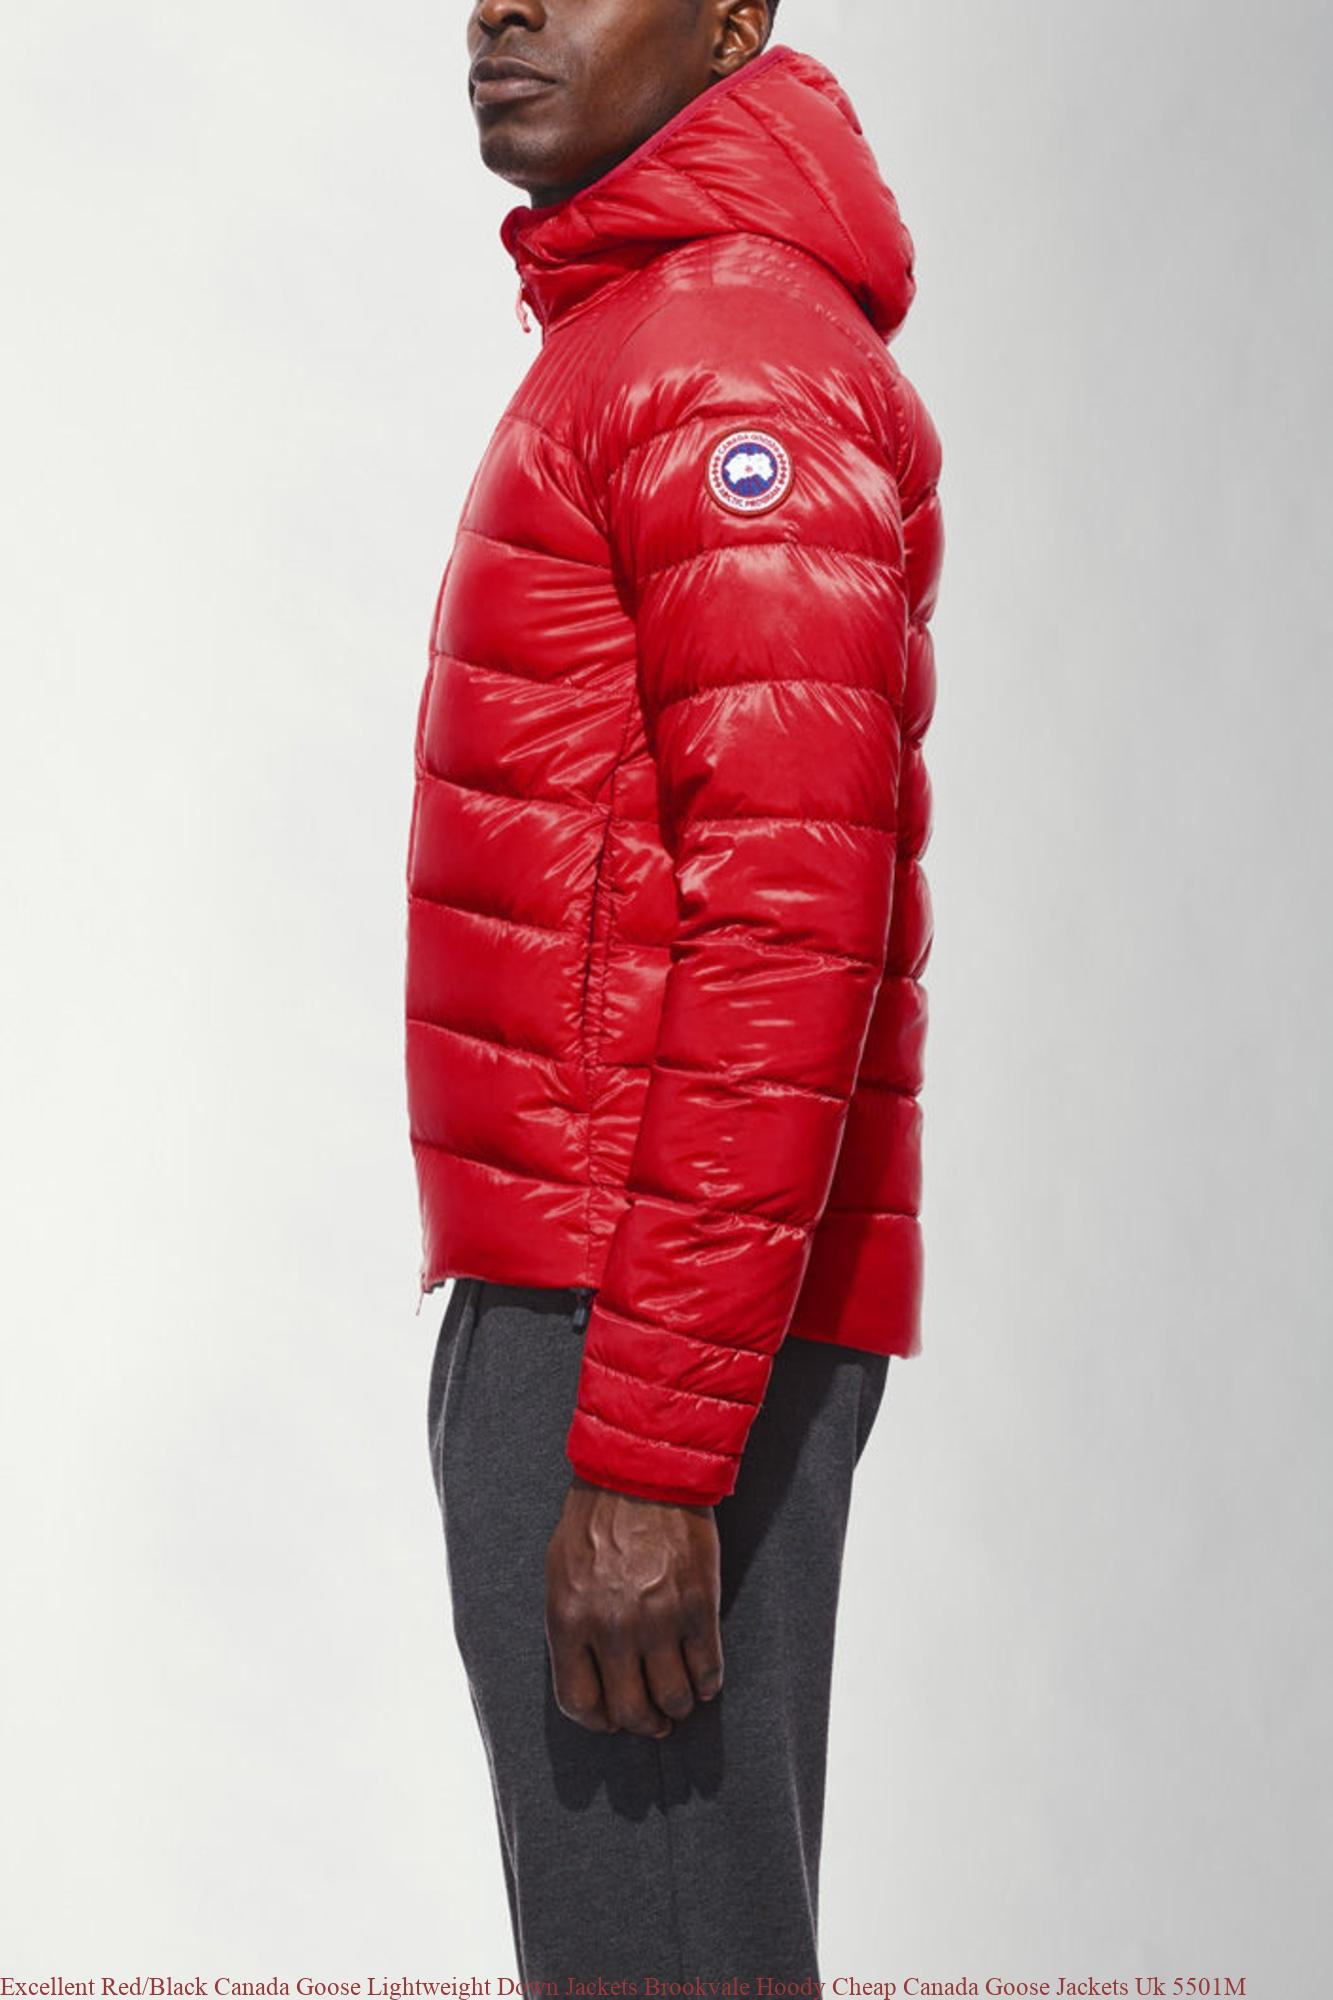 f9651d8b51a Excellent Red/Black Canada Goose Lightweight Down Jackets Brookvale Hoody  Cheap Canada Goose Jackets Uk 5501M